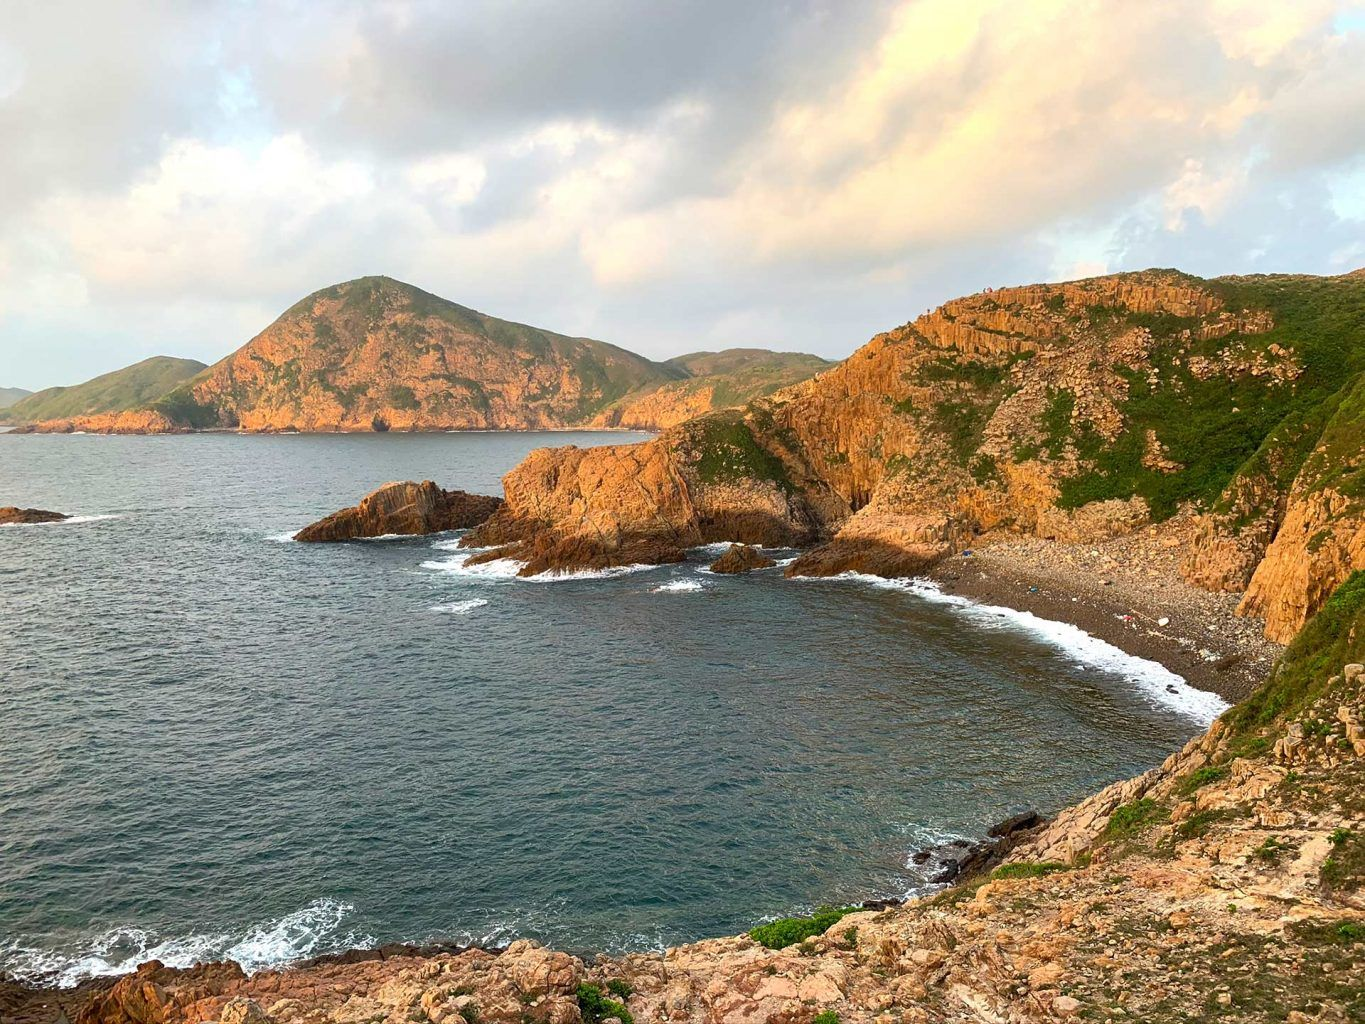 the rugged coastline of the UNESCO Global Geopark in Hong Kong